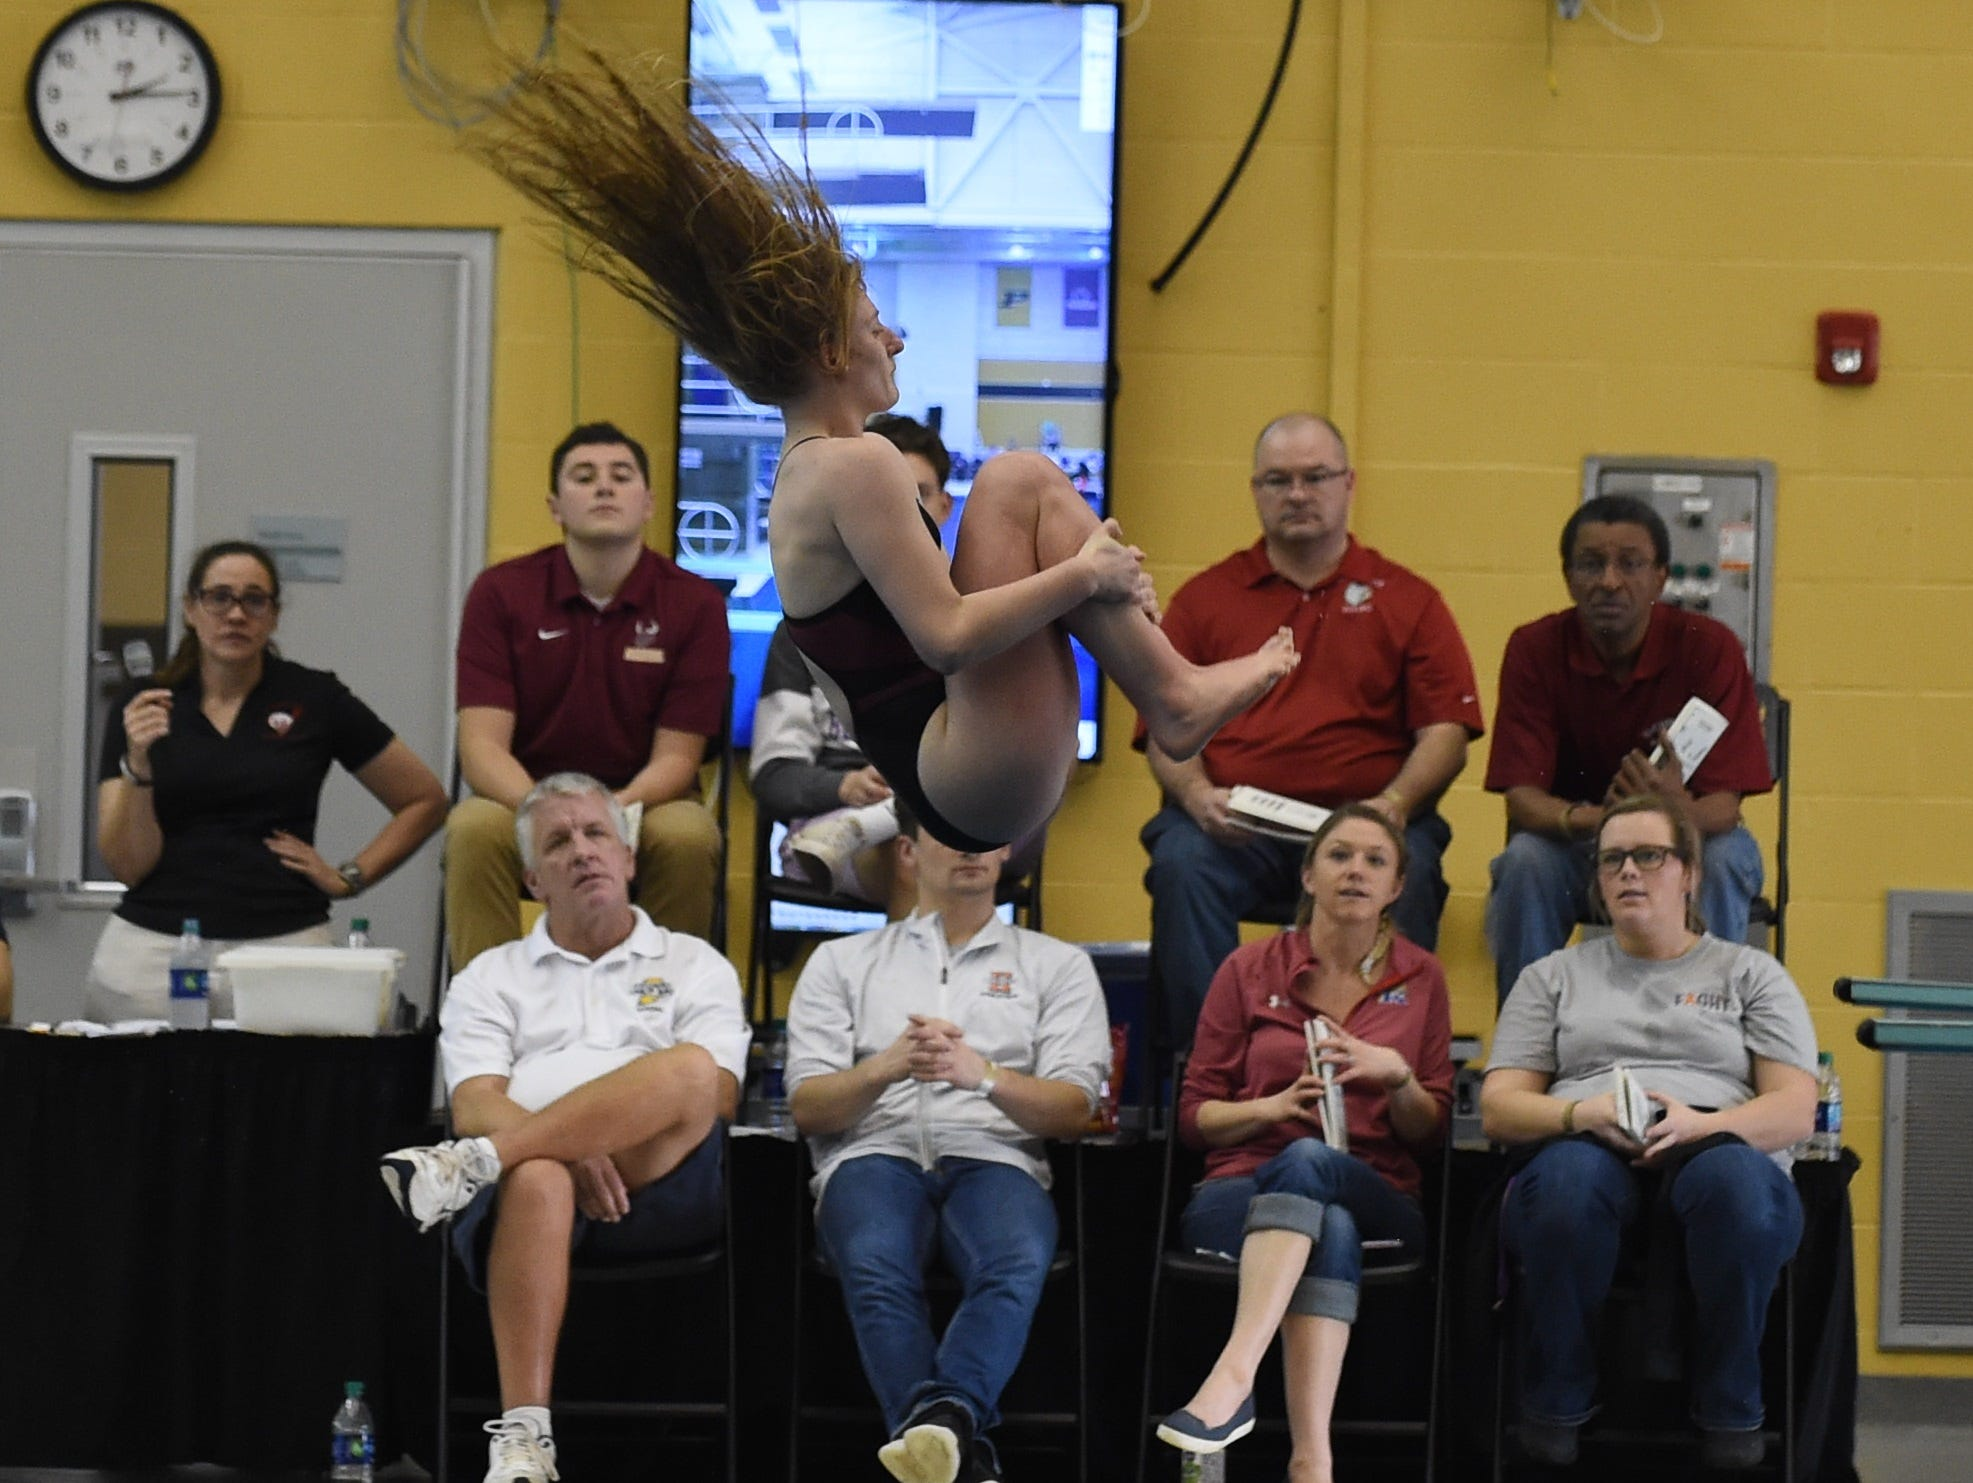 Images from Saturday's North Central Conference Swimming and Diving Championships at Purdue. Elise Hertling.